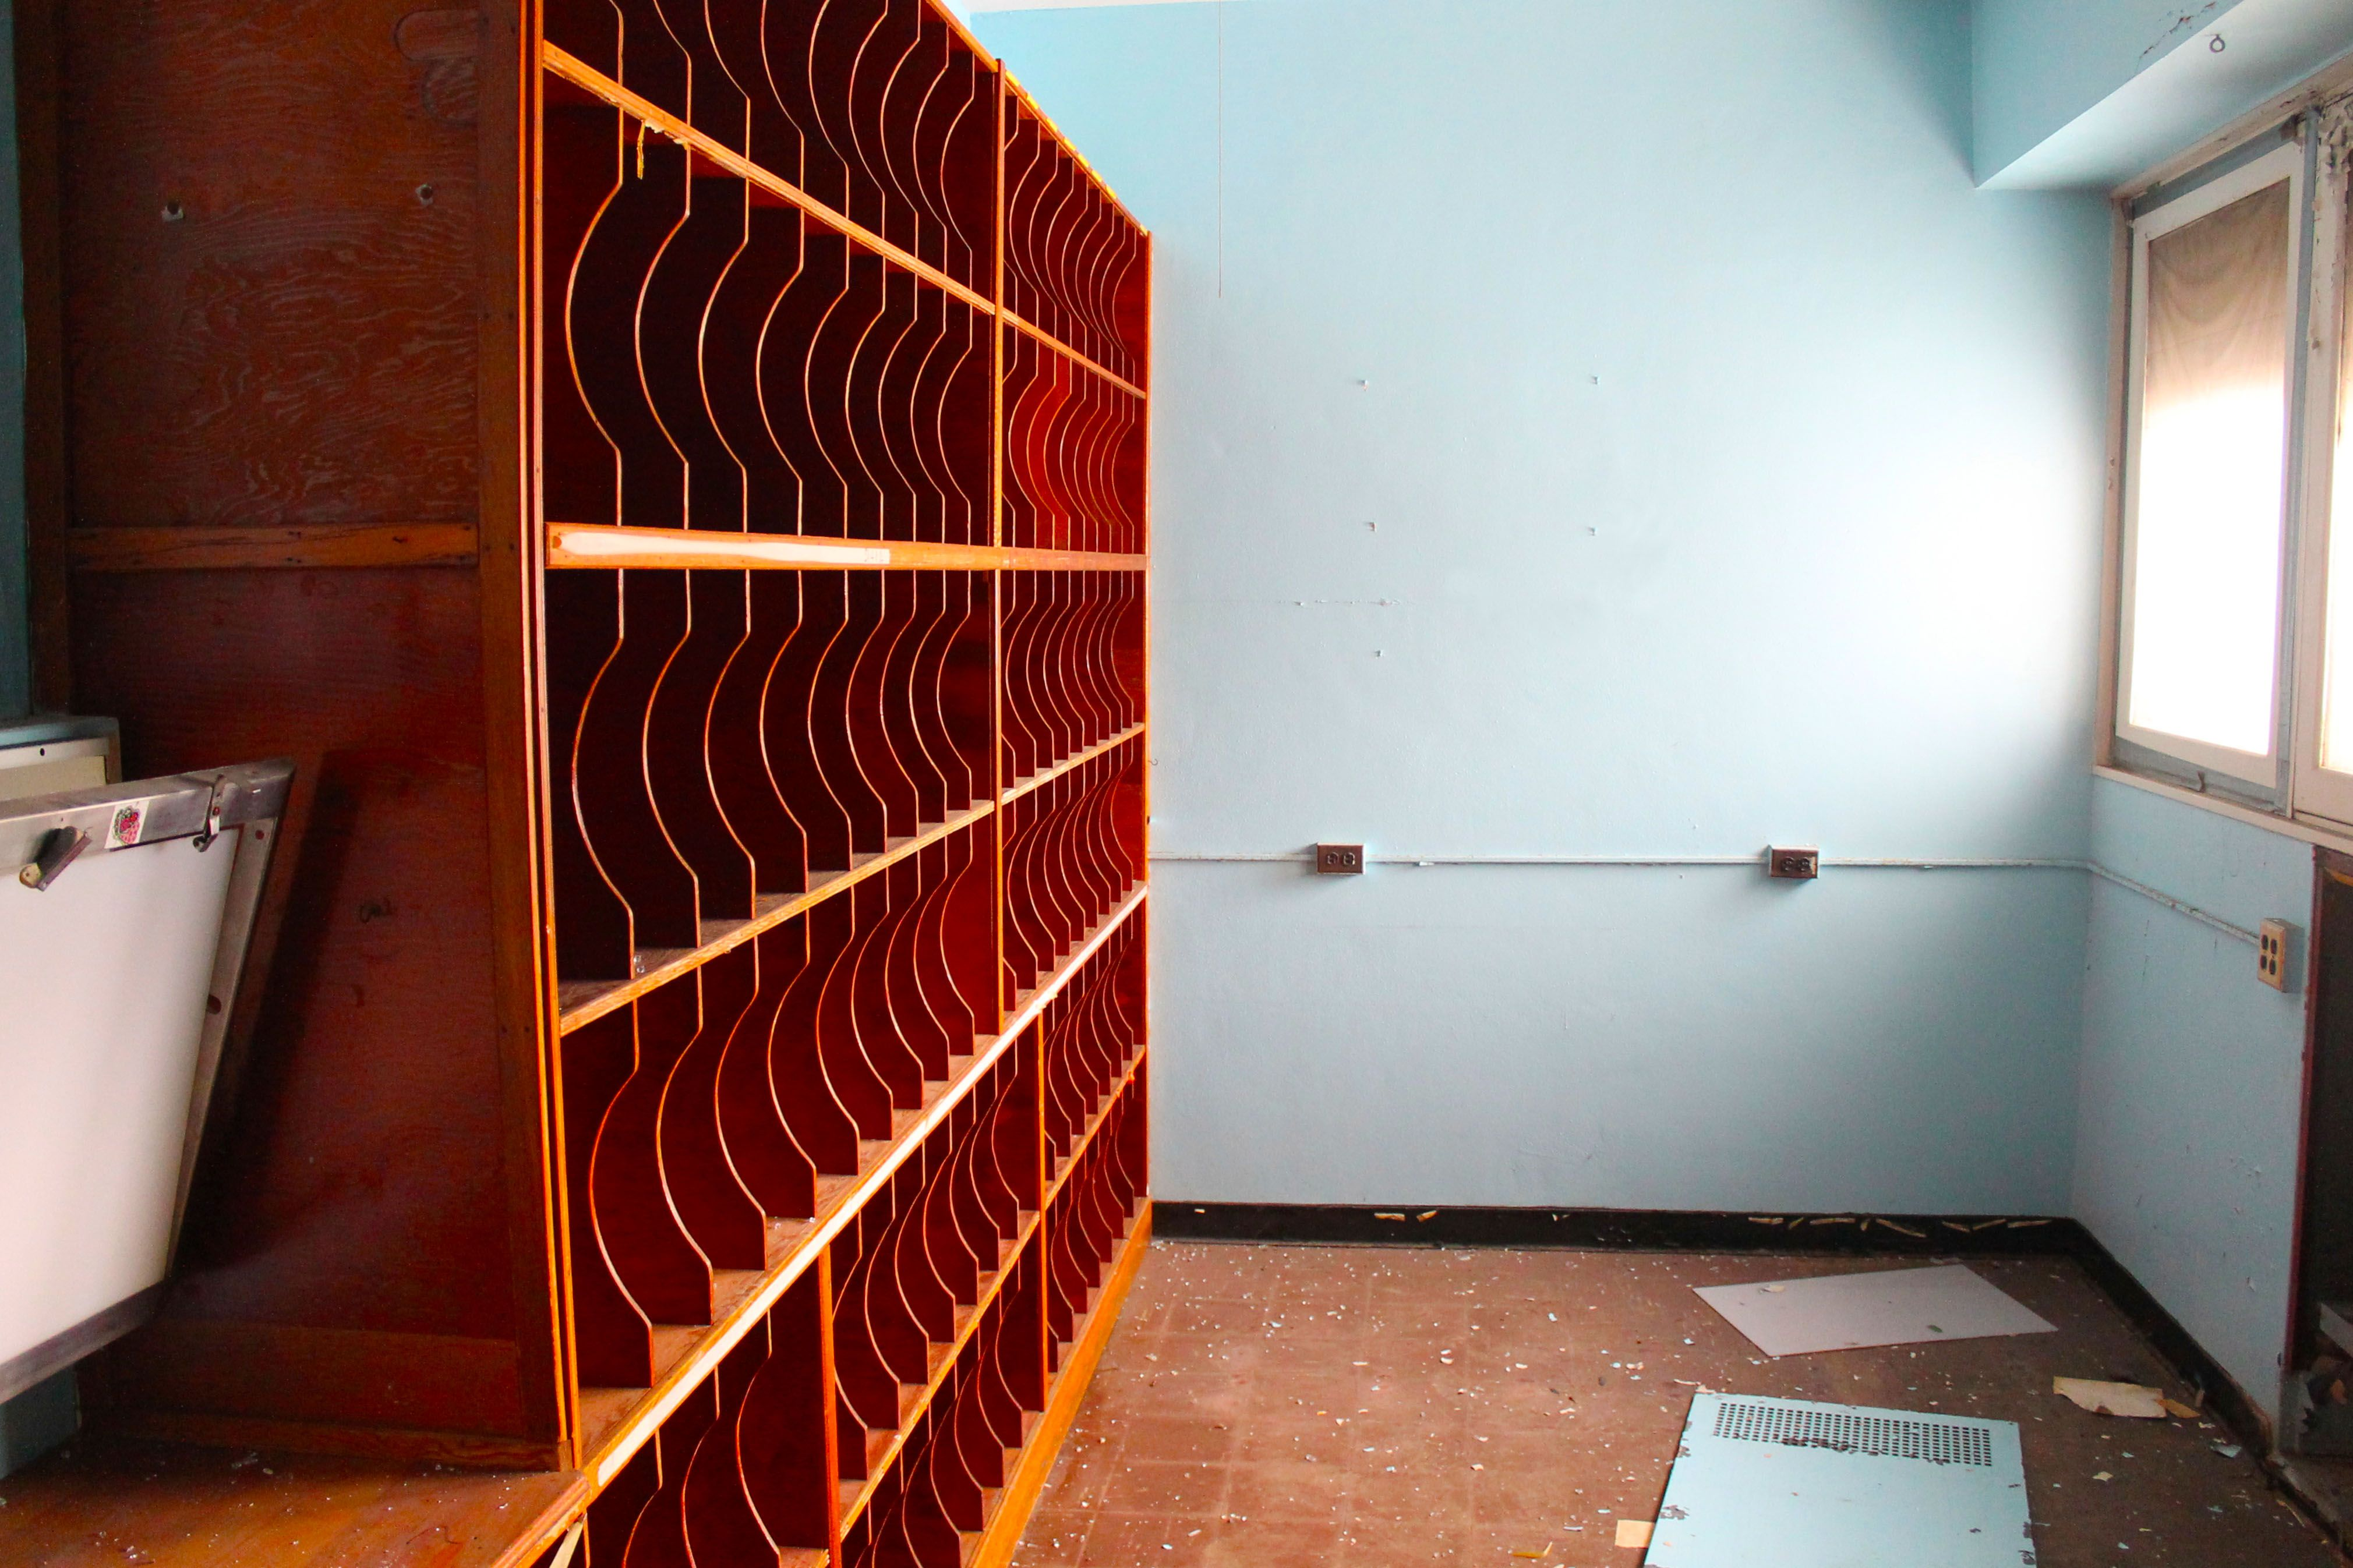 X Ray Room Rochester Psychiatric Center Rochester Ny Abandoned Places Room Wine Rack